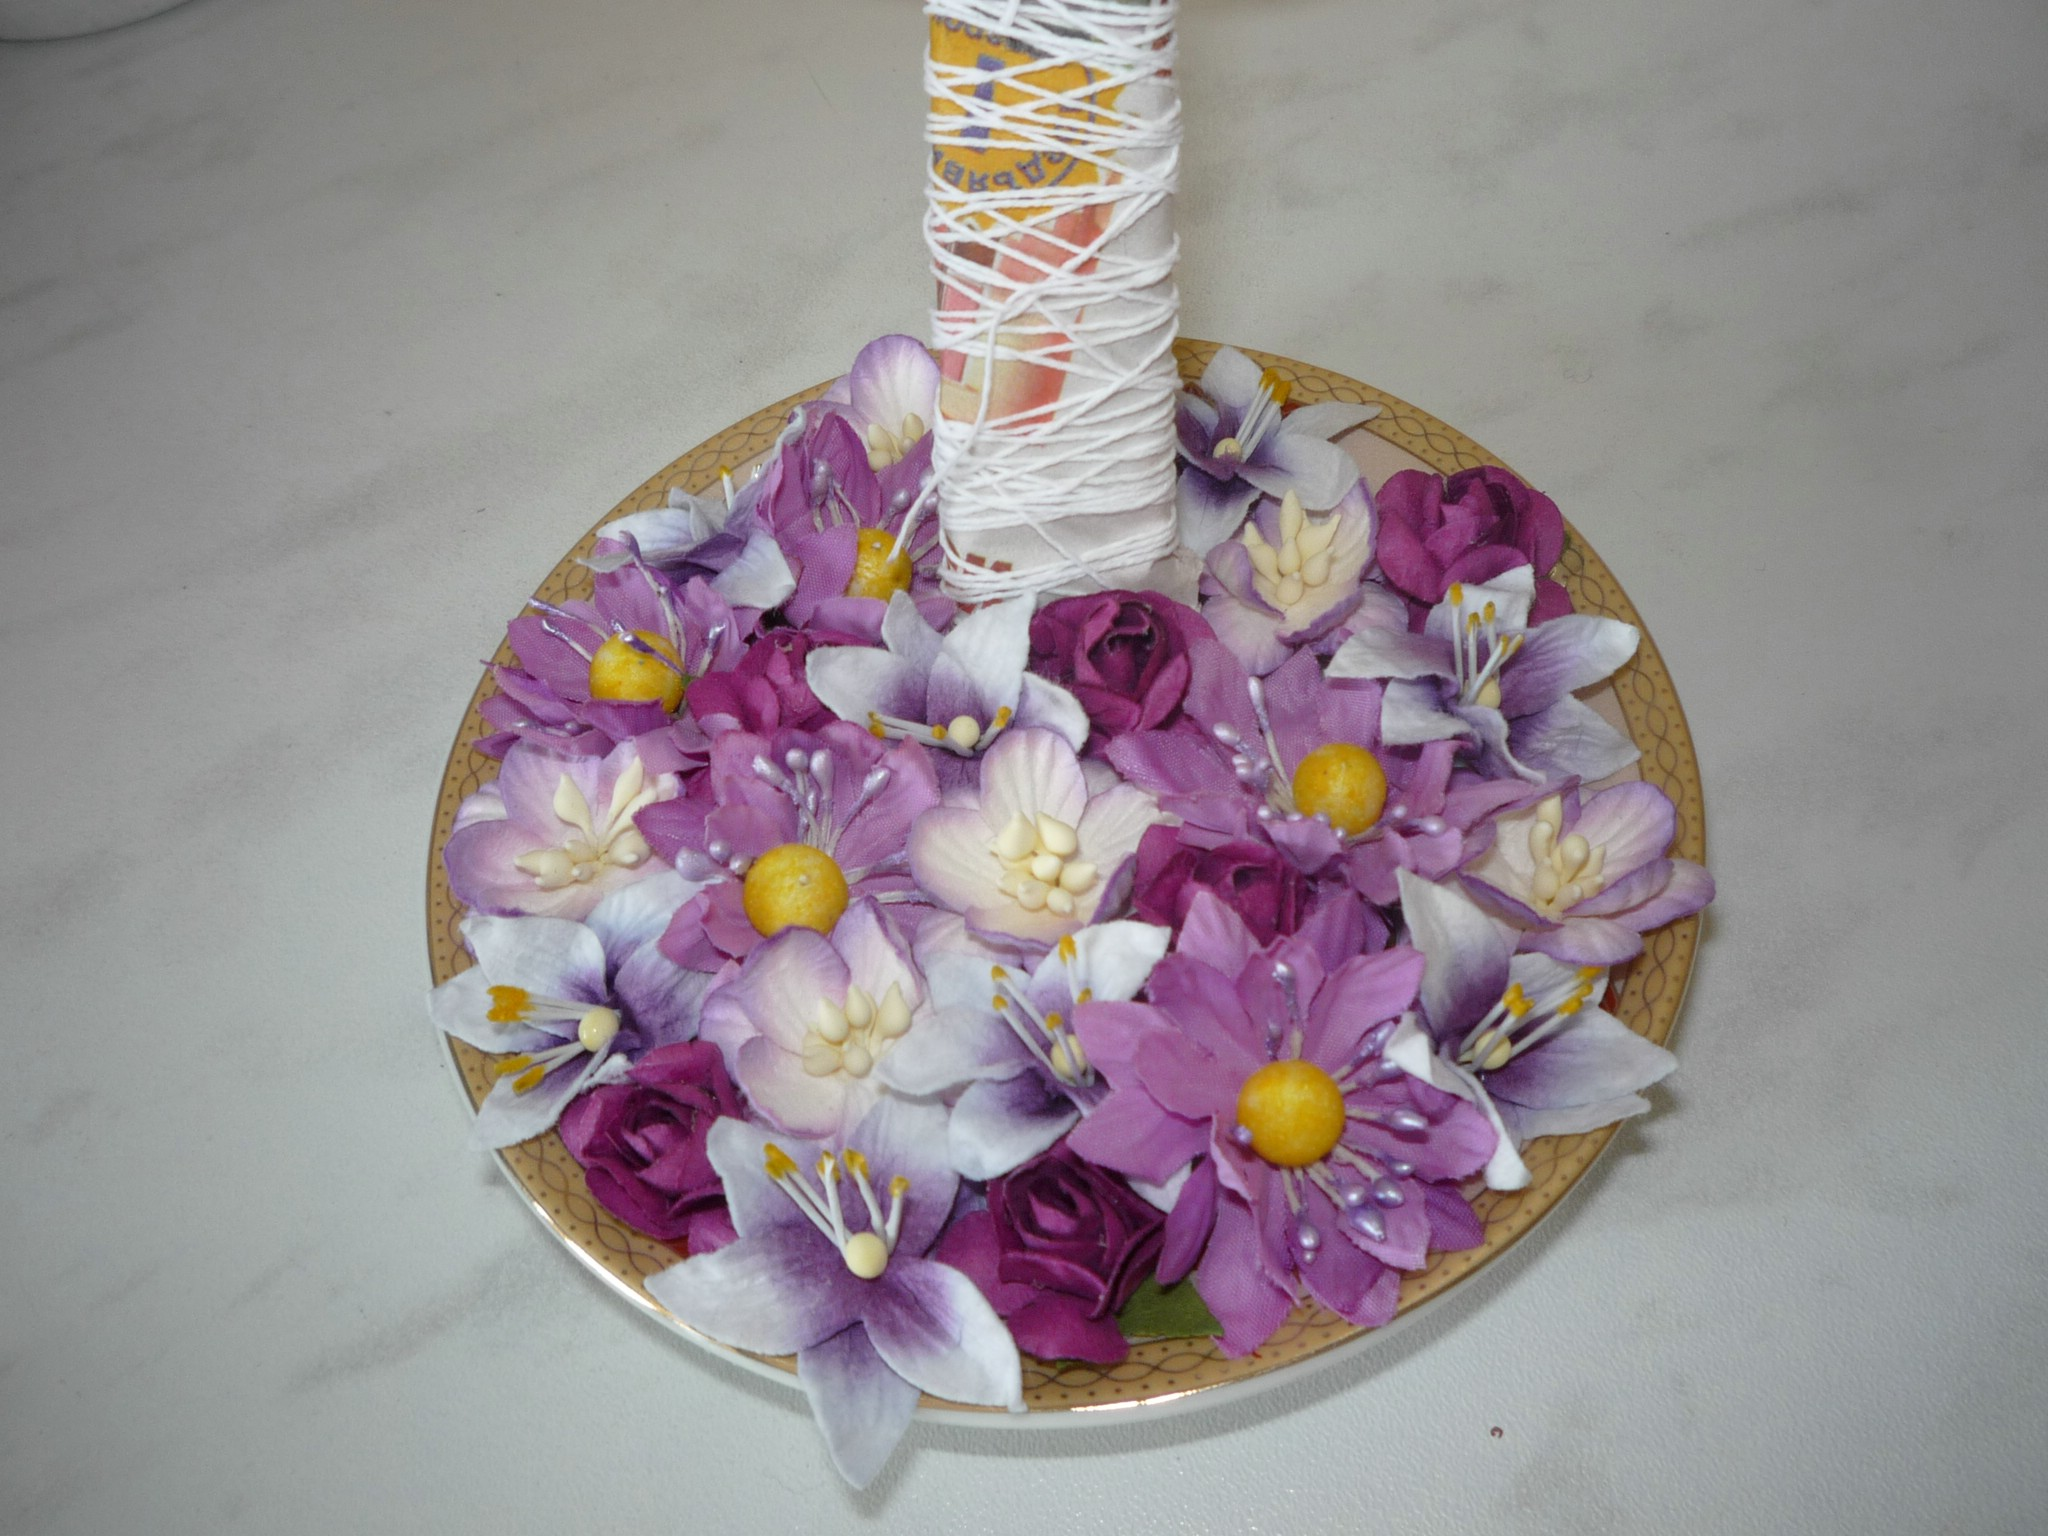 Flower Flying Cup Making (Do It Yourself Project)